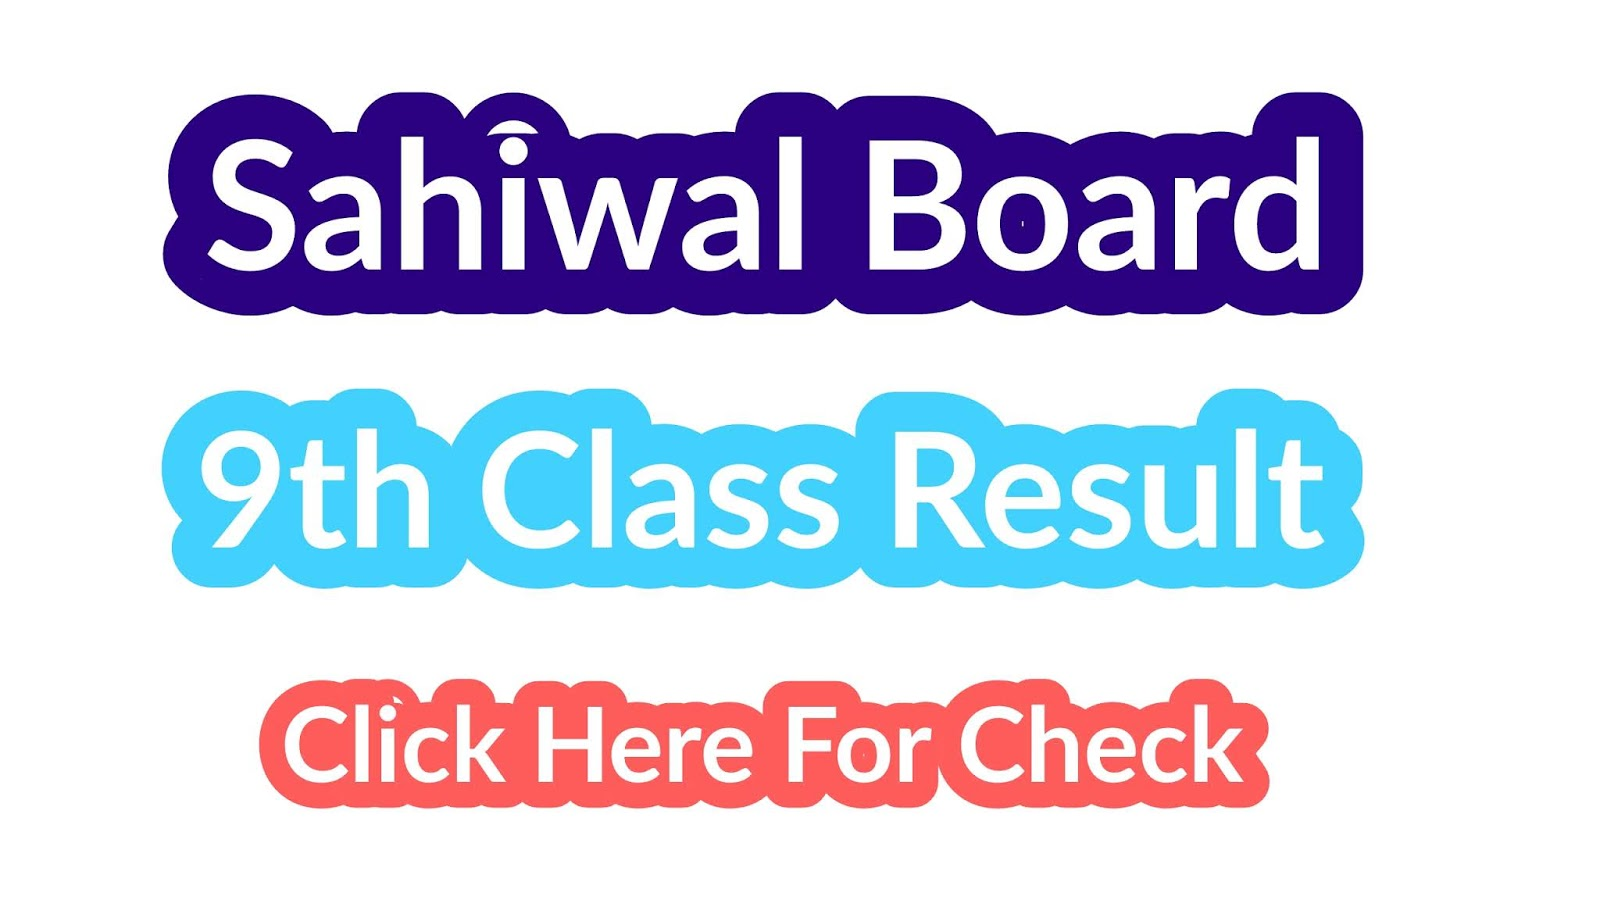 BISE SAHIWAL Board 9th Class Result 2019 - Education Helper